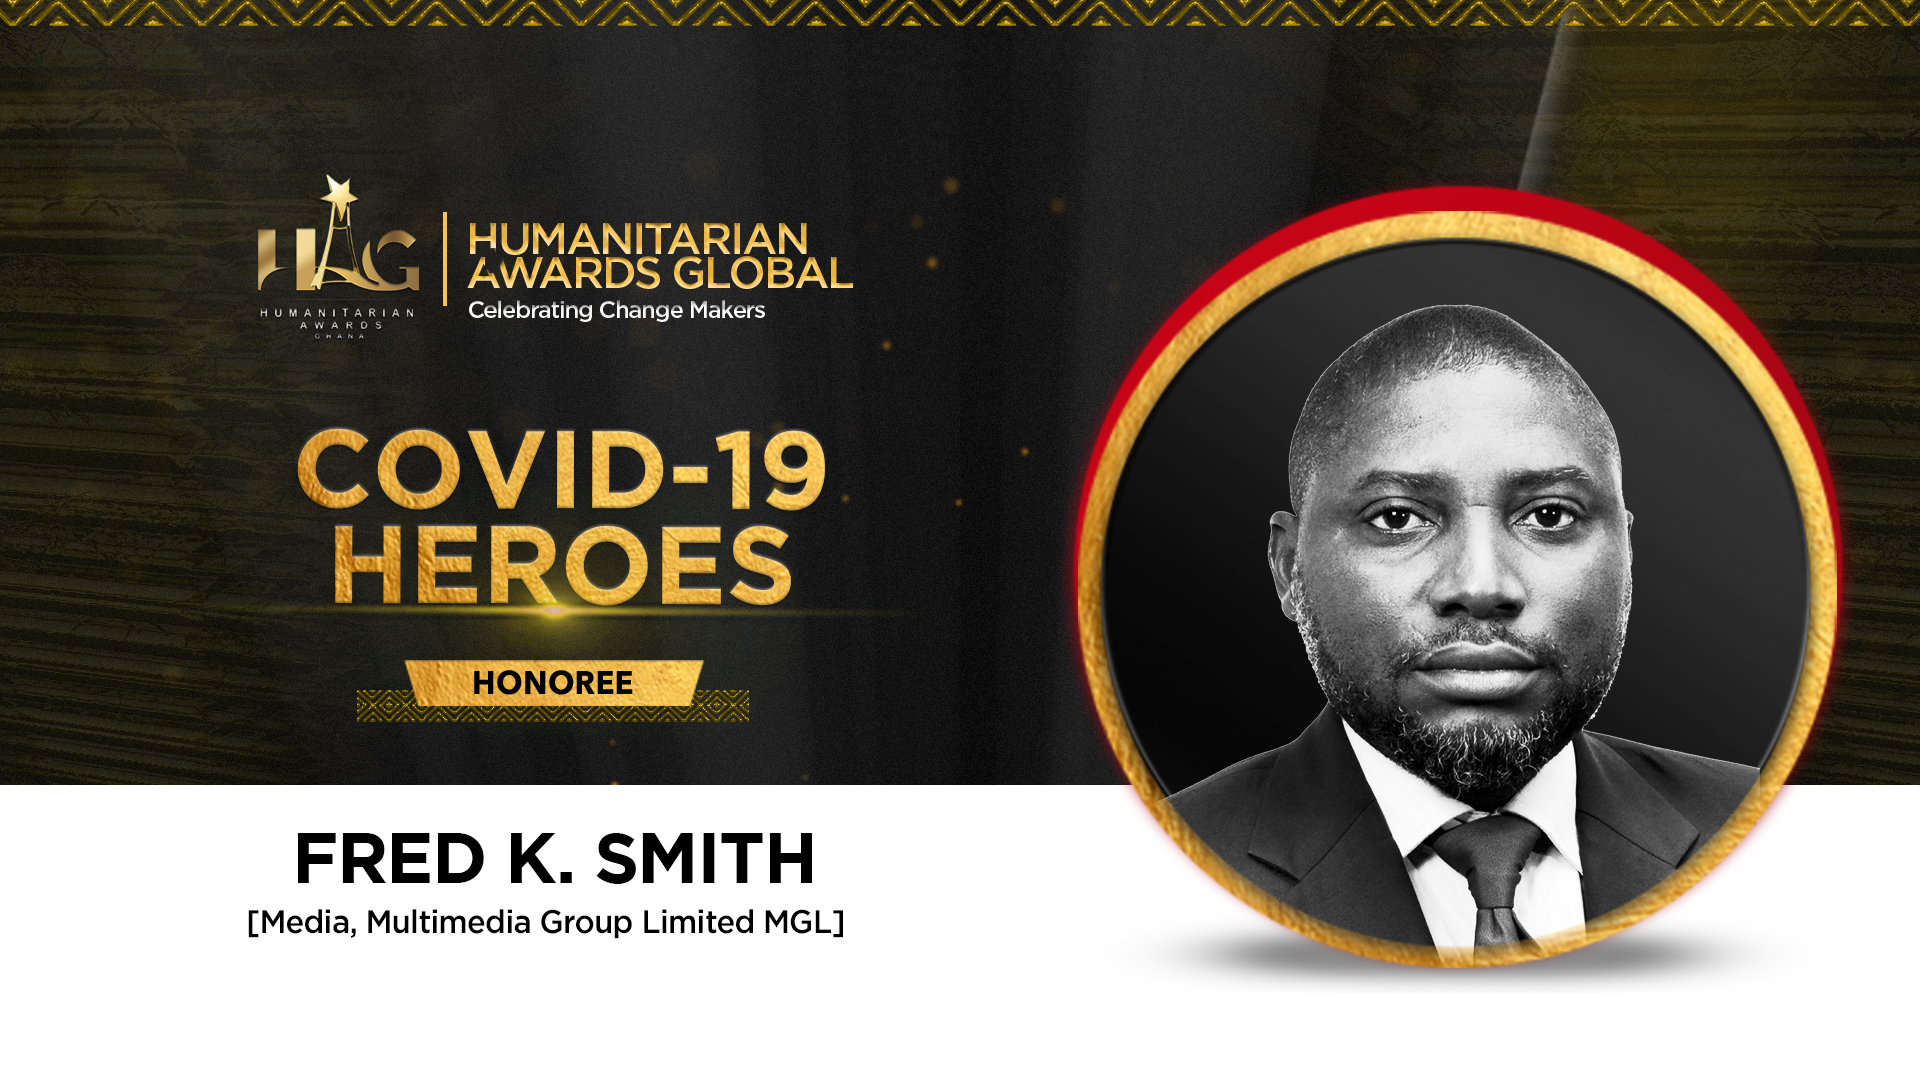 Fred K. Smith To Receive Covid 19 Heroes Awards At Humanitarian Awards Global